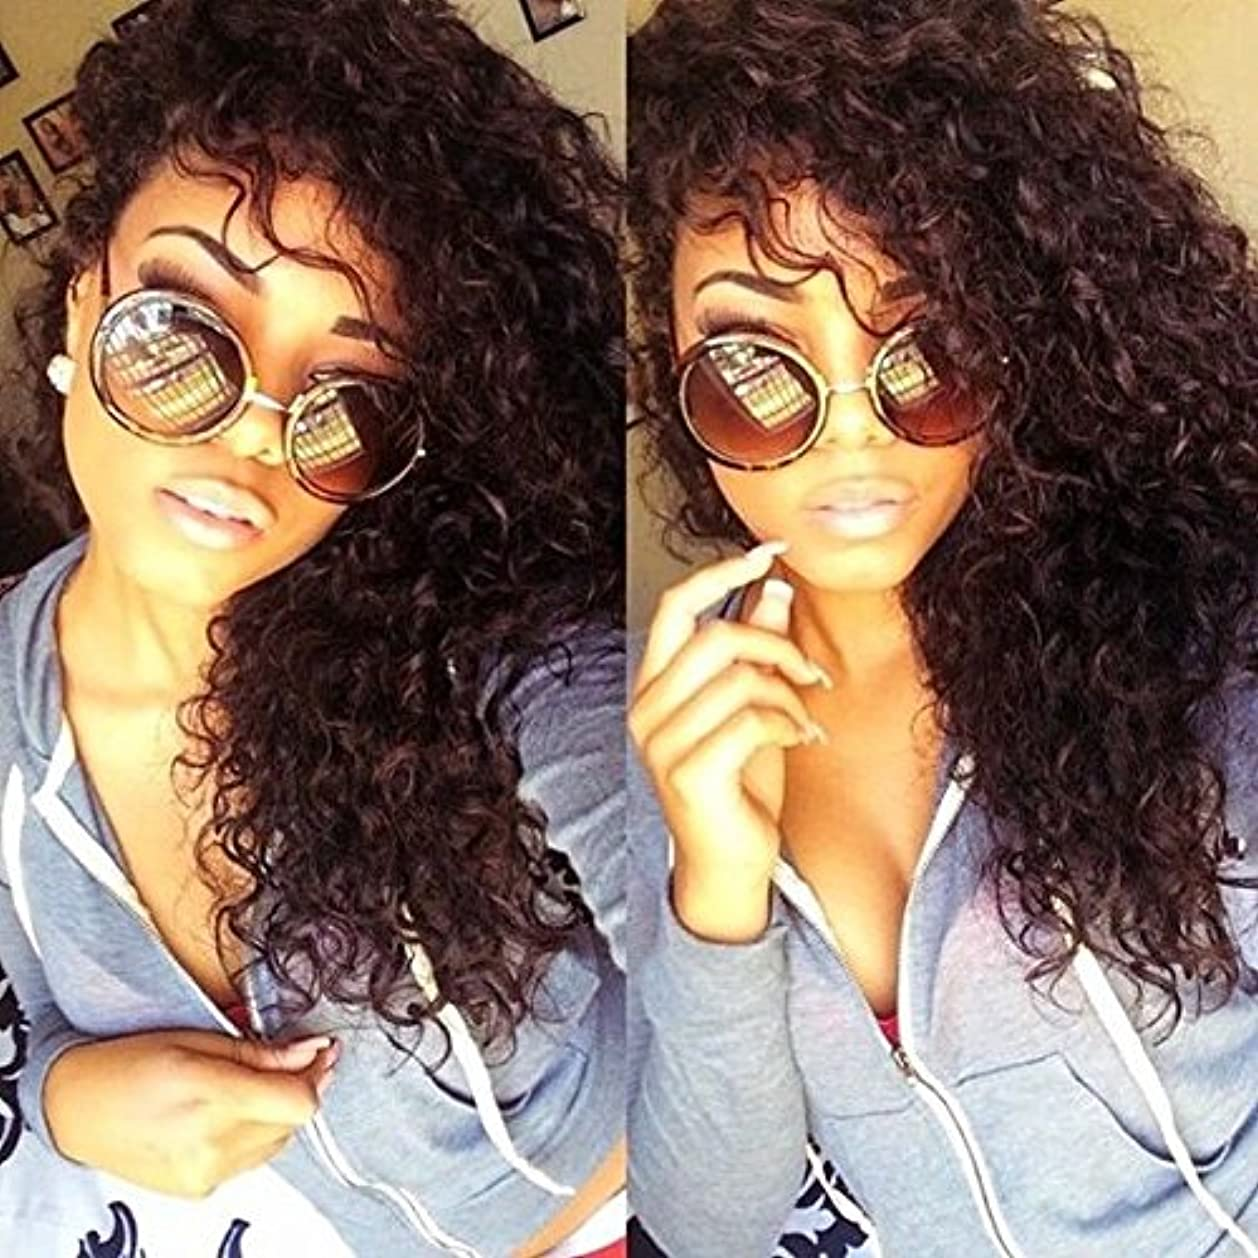 Eayon Hair Curly Full Lace Human Hair Wigs-Glueless 130% Density Brazilian Virgin Remy Wigs with Baby Hair for Women Natural Color 16Inch xwexm6758